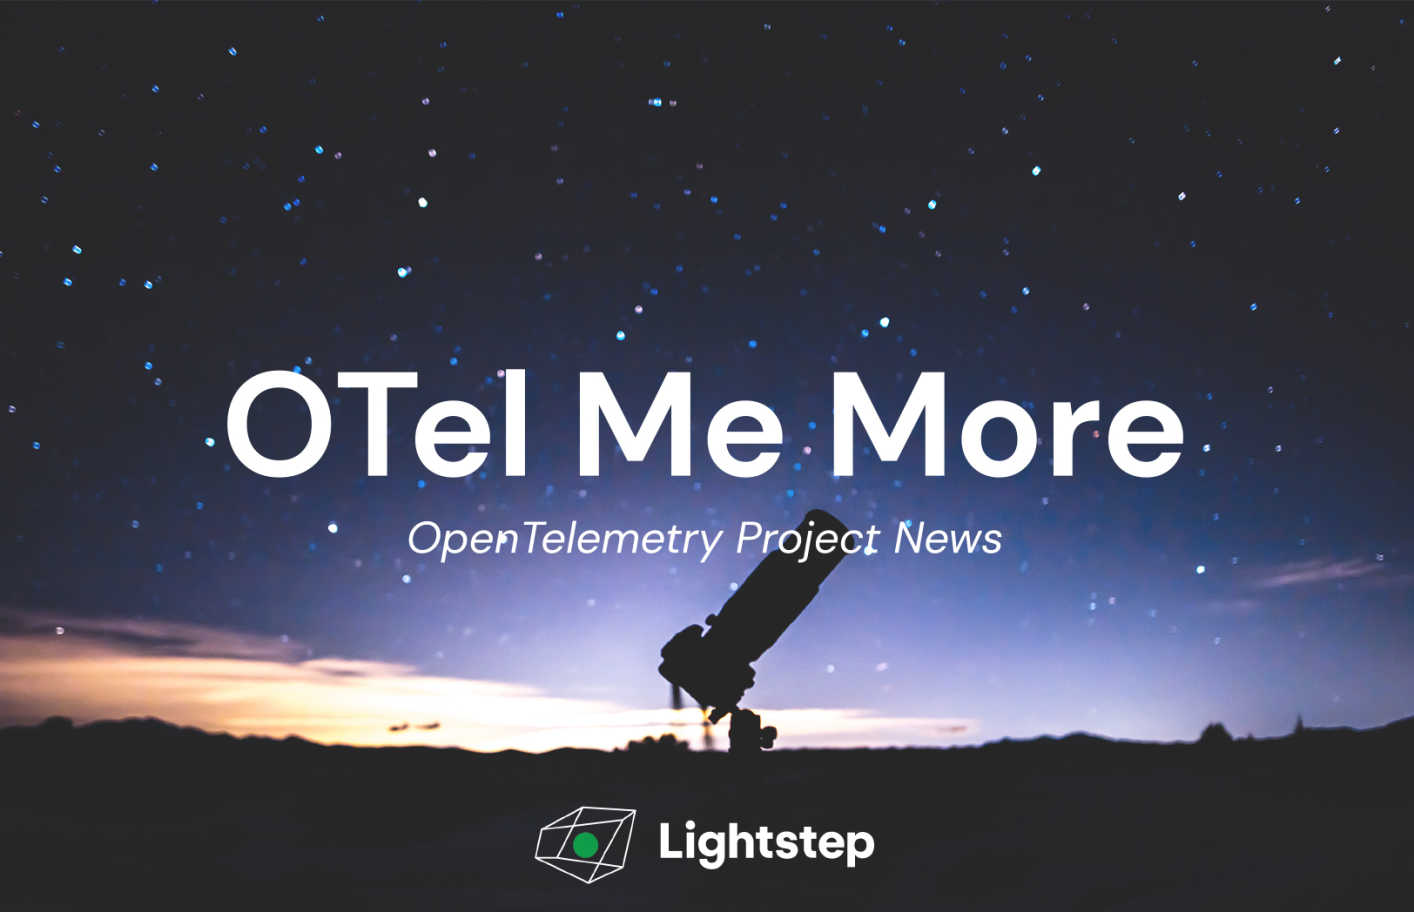 OTel Me More: OpenTelemetry Project News – Vol 29